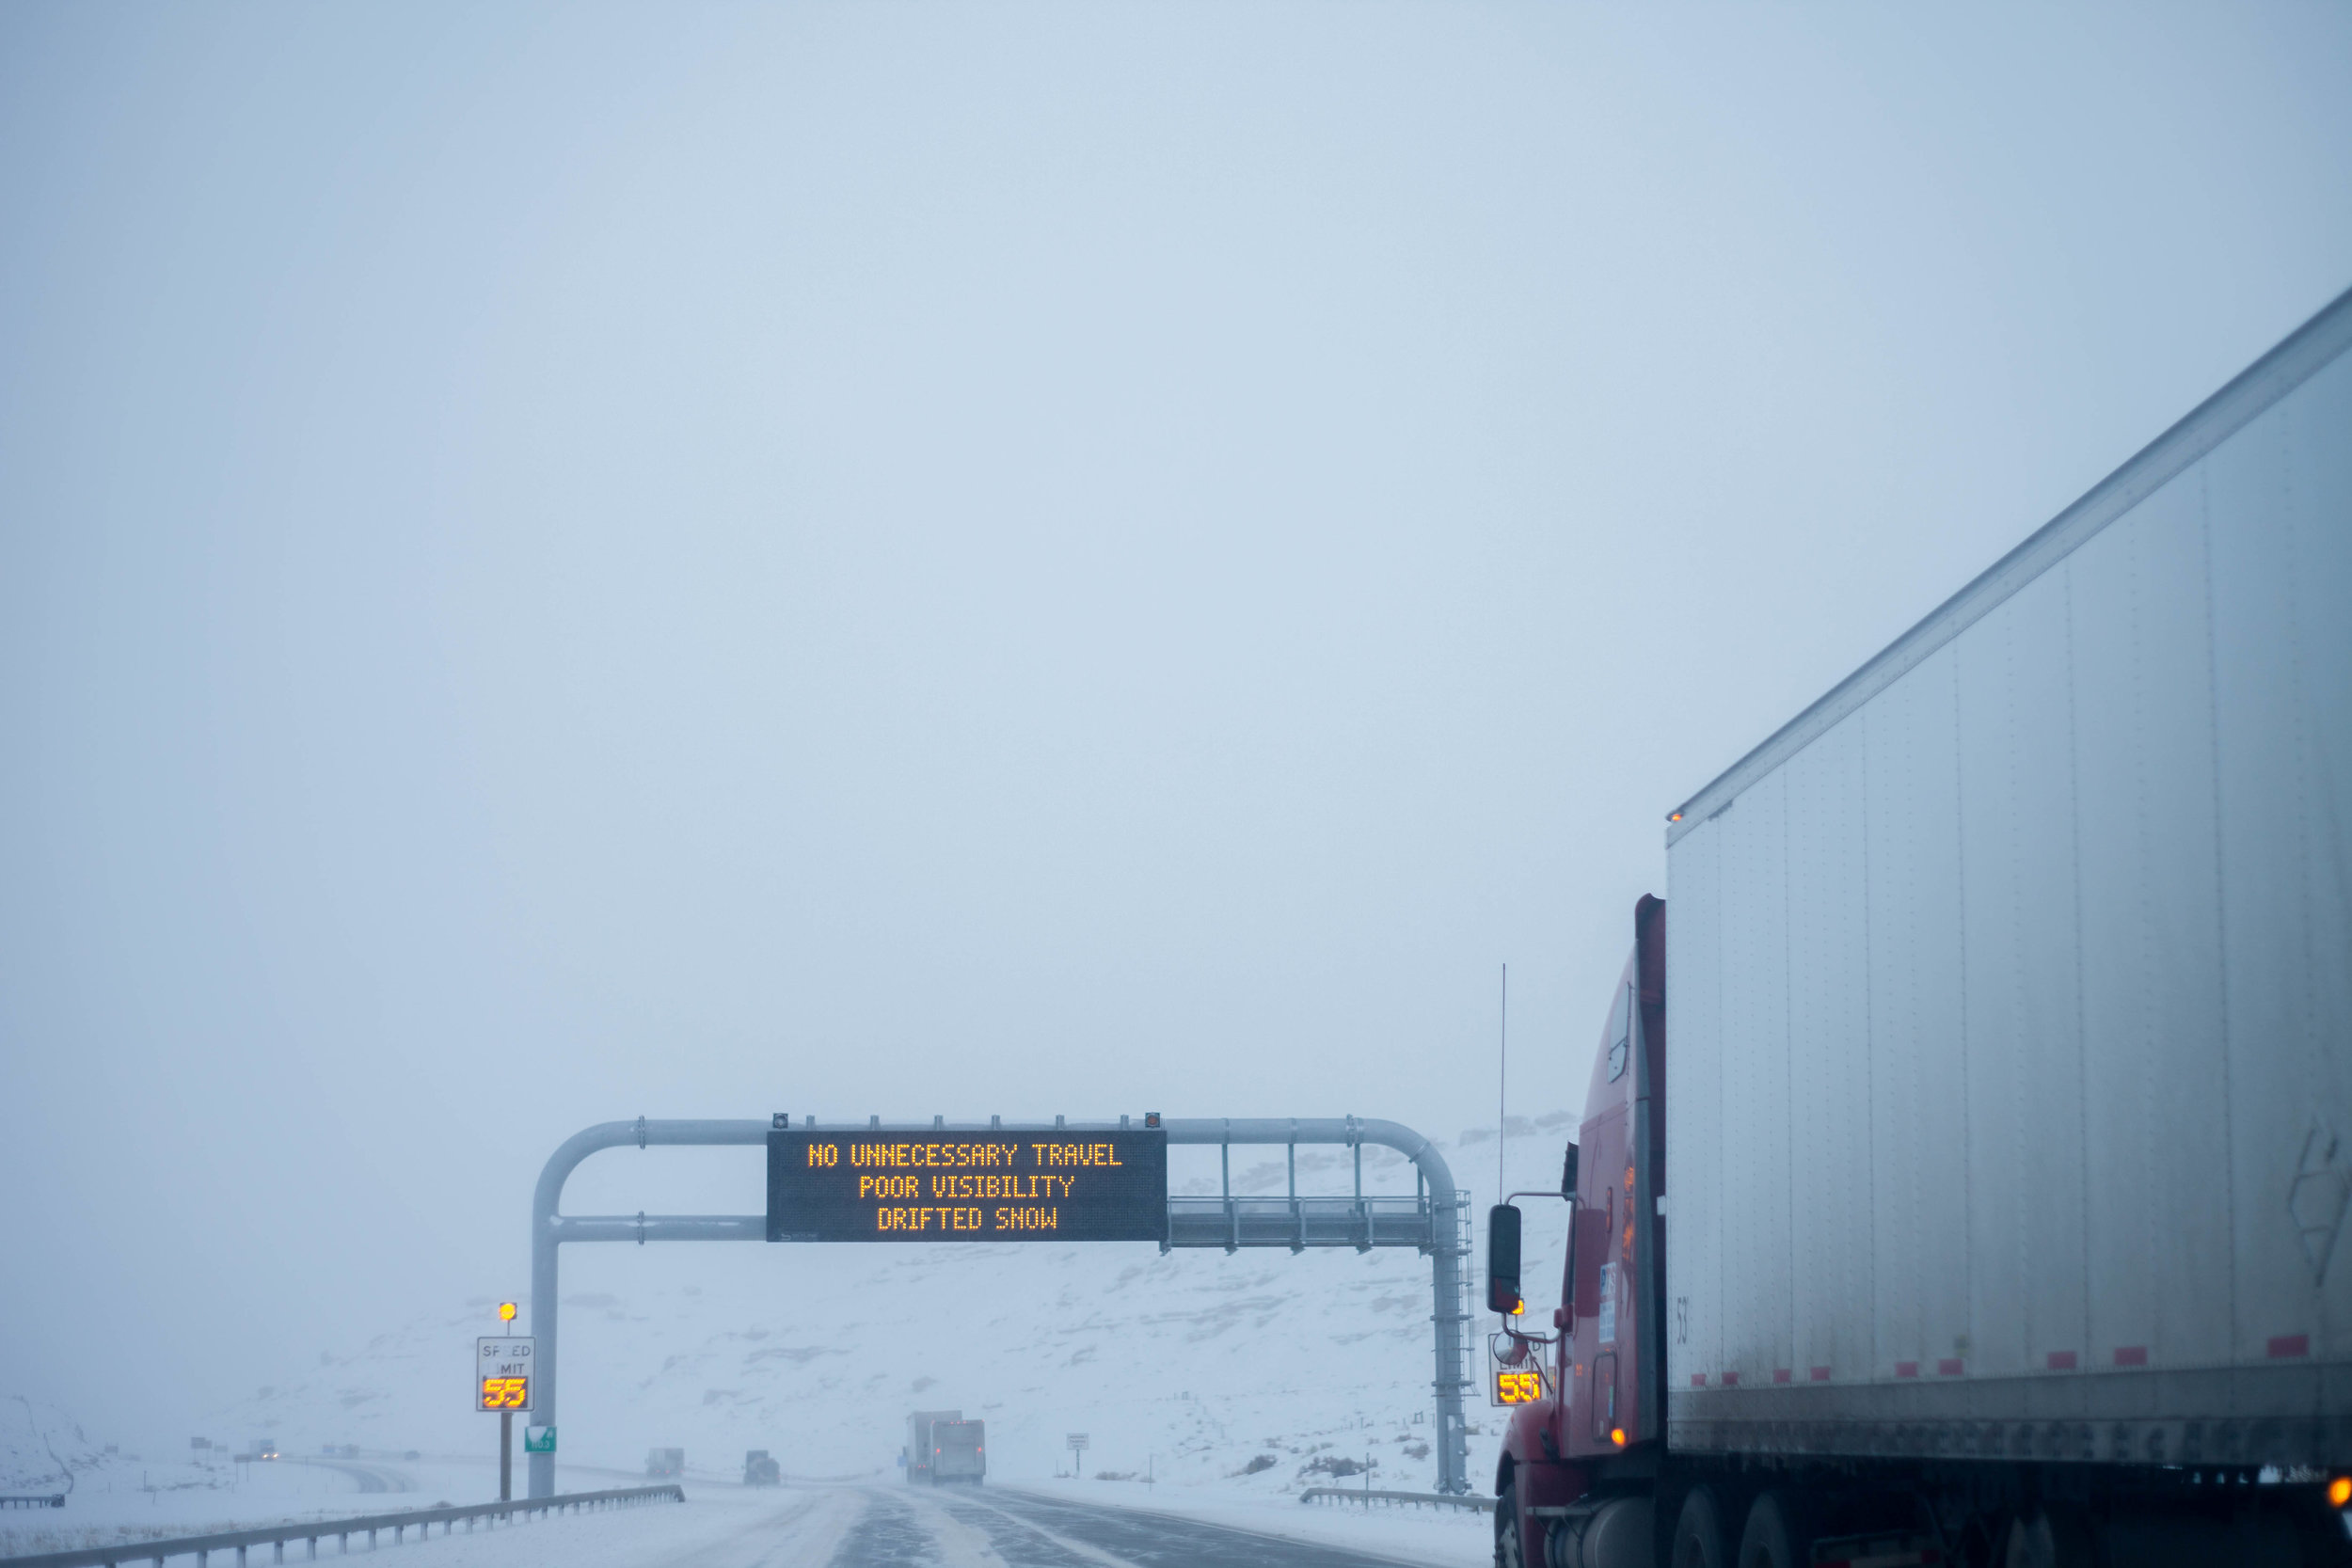 What exactly is unnecessary travel? Driving to Salt Lake City for a huge powder day?